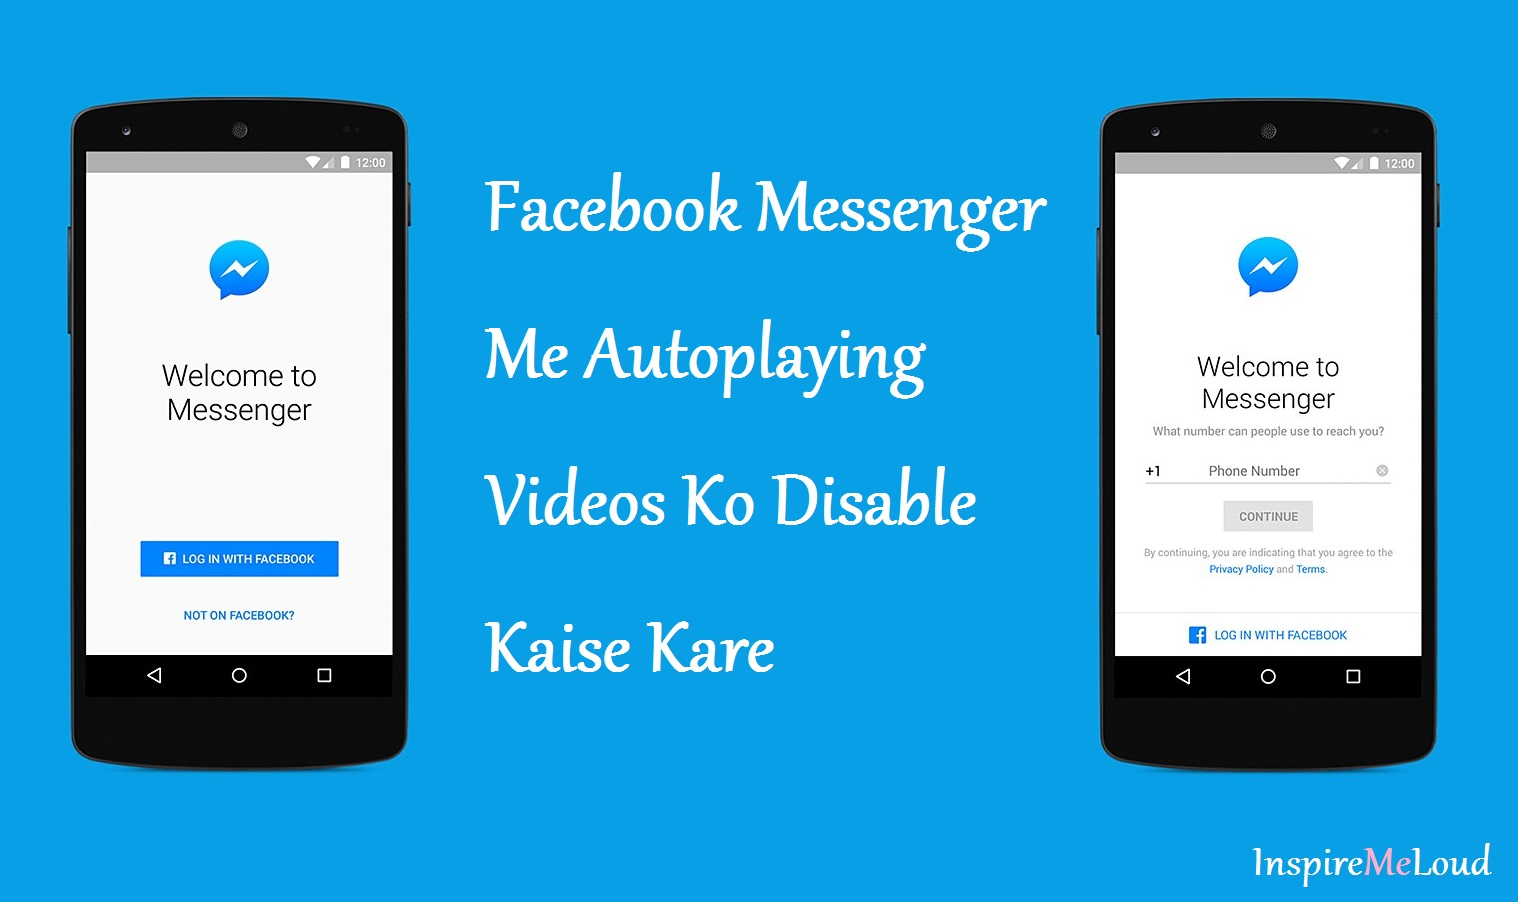 Facebook Messenger Me Autoplaying Videos Ko Stop or Disable Kaise Kare